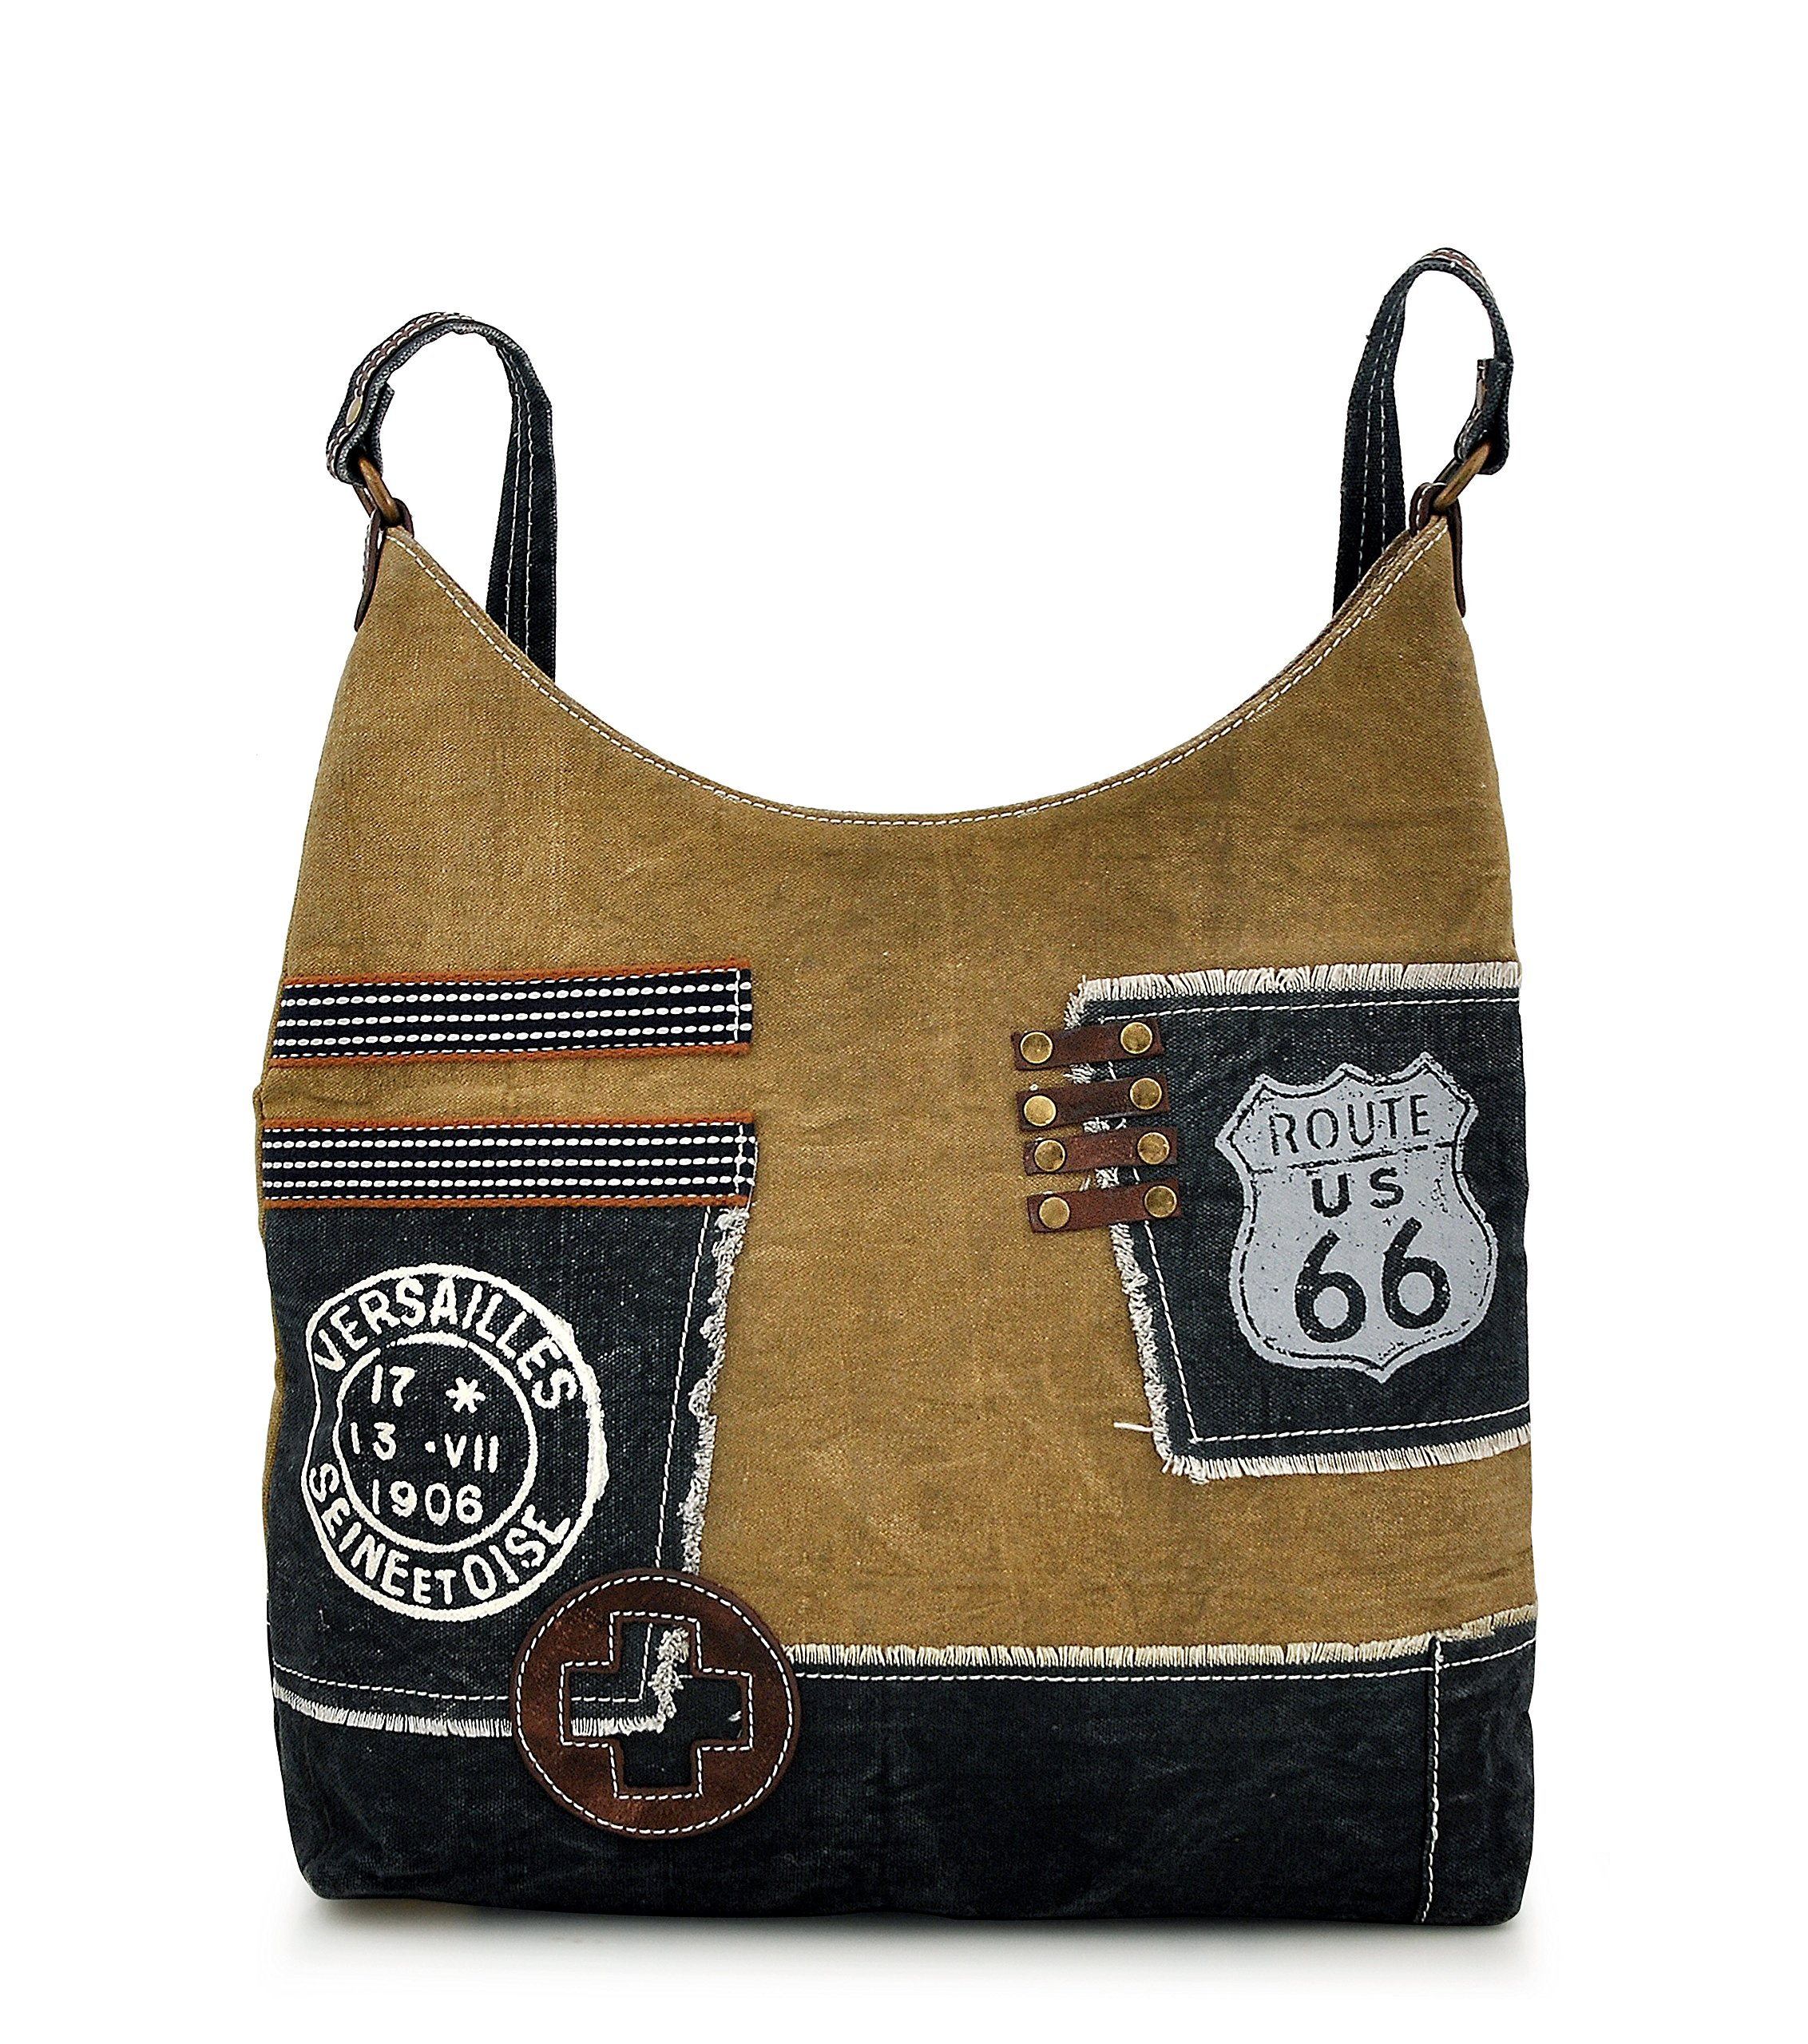 Canvas Tote bag for Women Girls Leather Trims Work Travel Shopper Backpack Cross body Hobo Messenger Shoulder Purse by Daphne (Route 66)